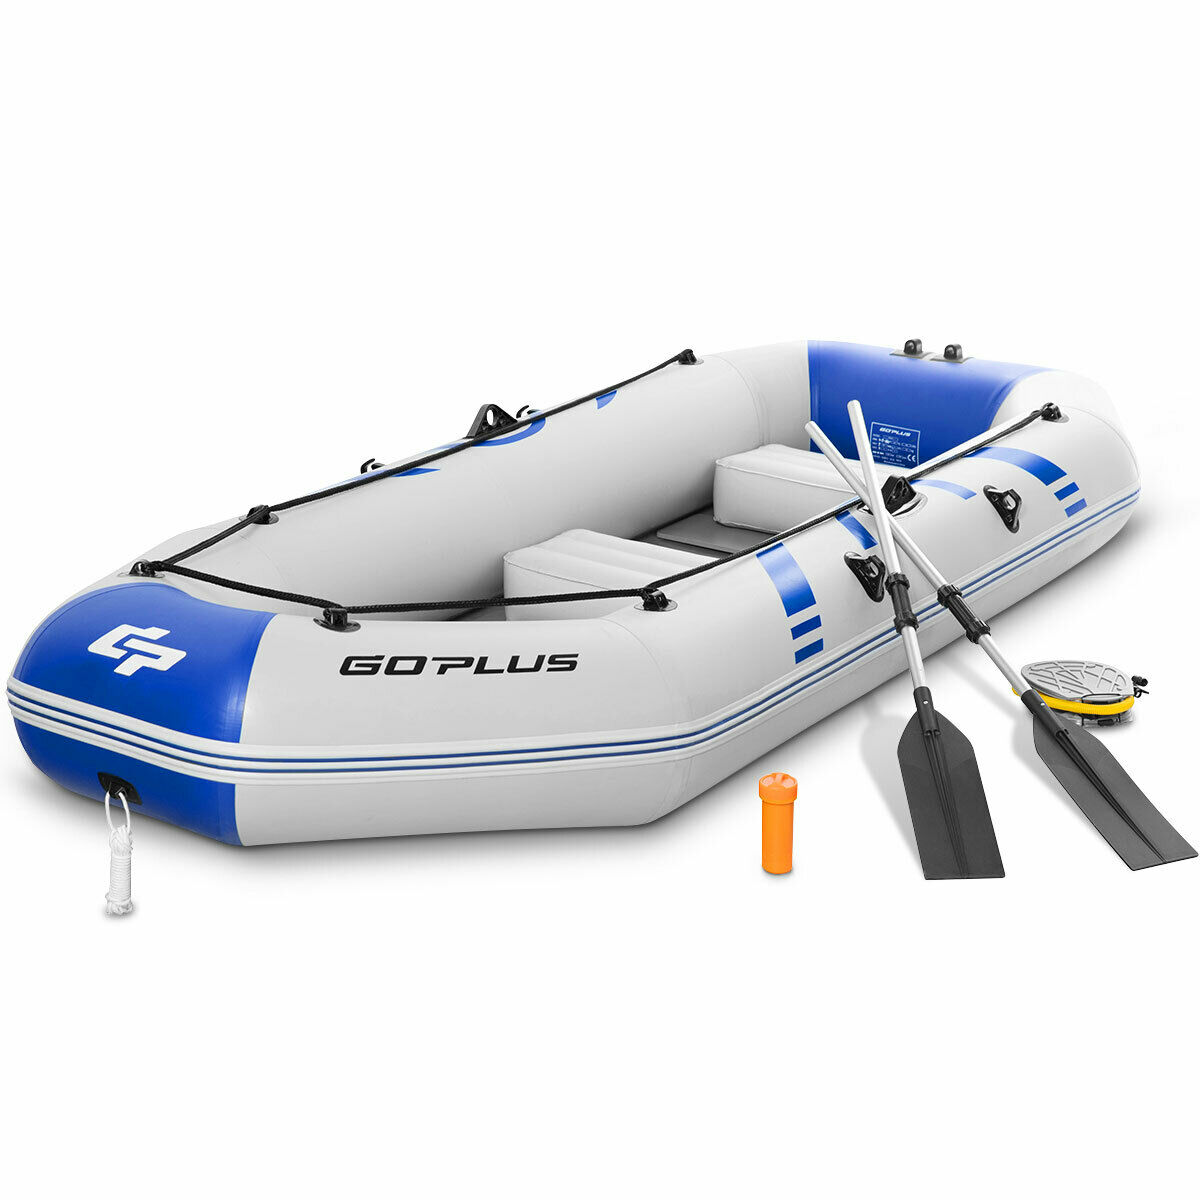 Goplus 3-4 Persons Inflatable Fishing Boat w/ Oars and Air Pump Water Sports